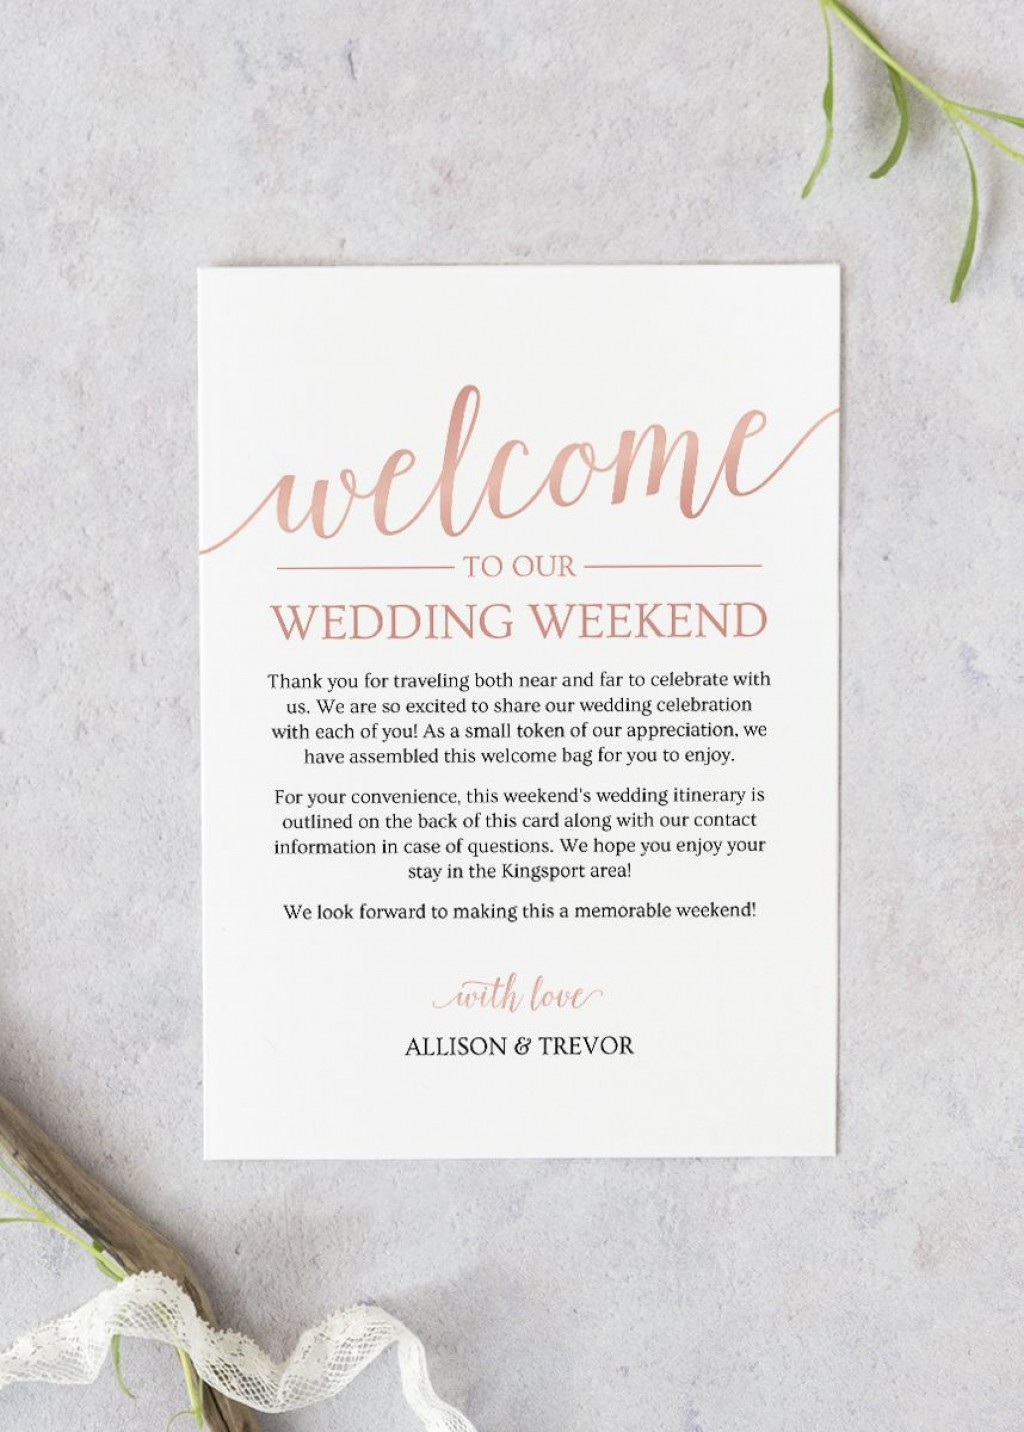 003 Stunning Wedding Guest Welcome Letter Template Image Large